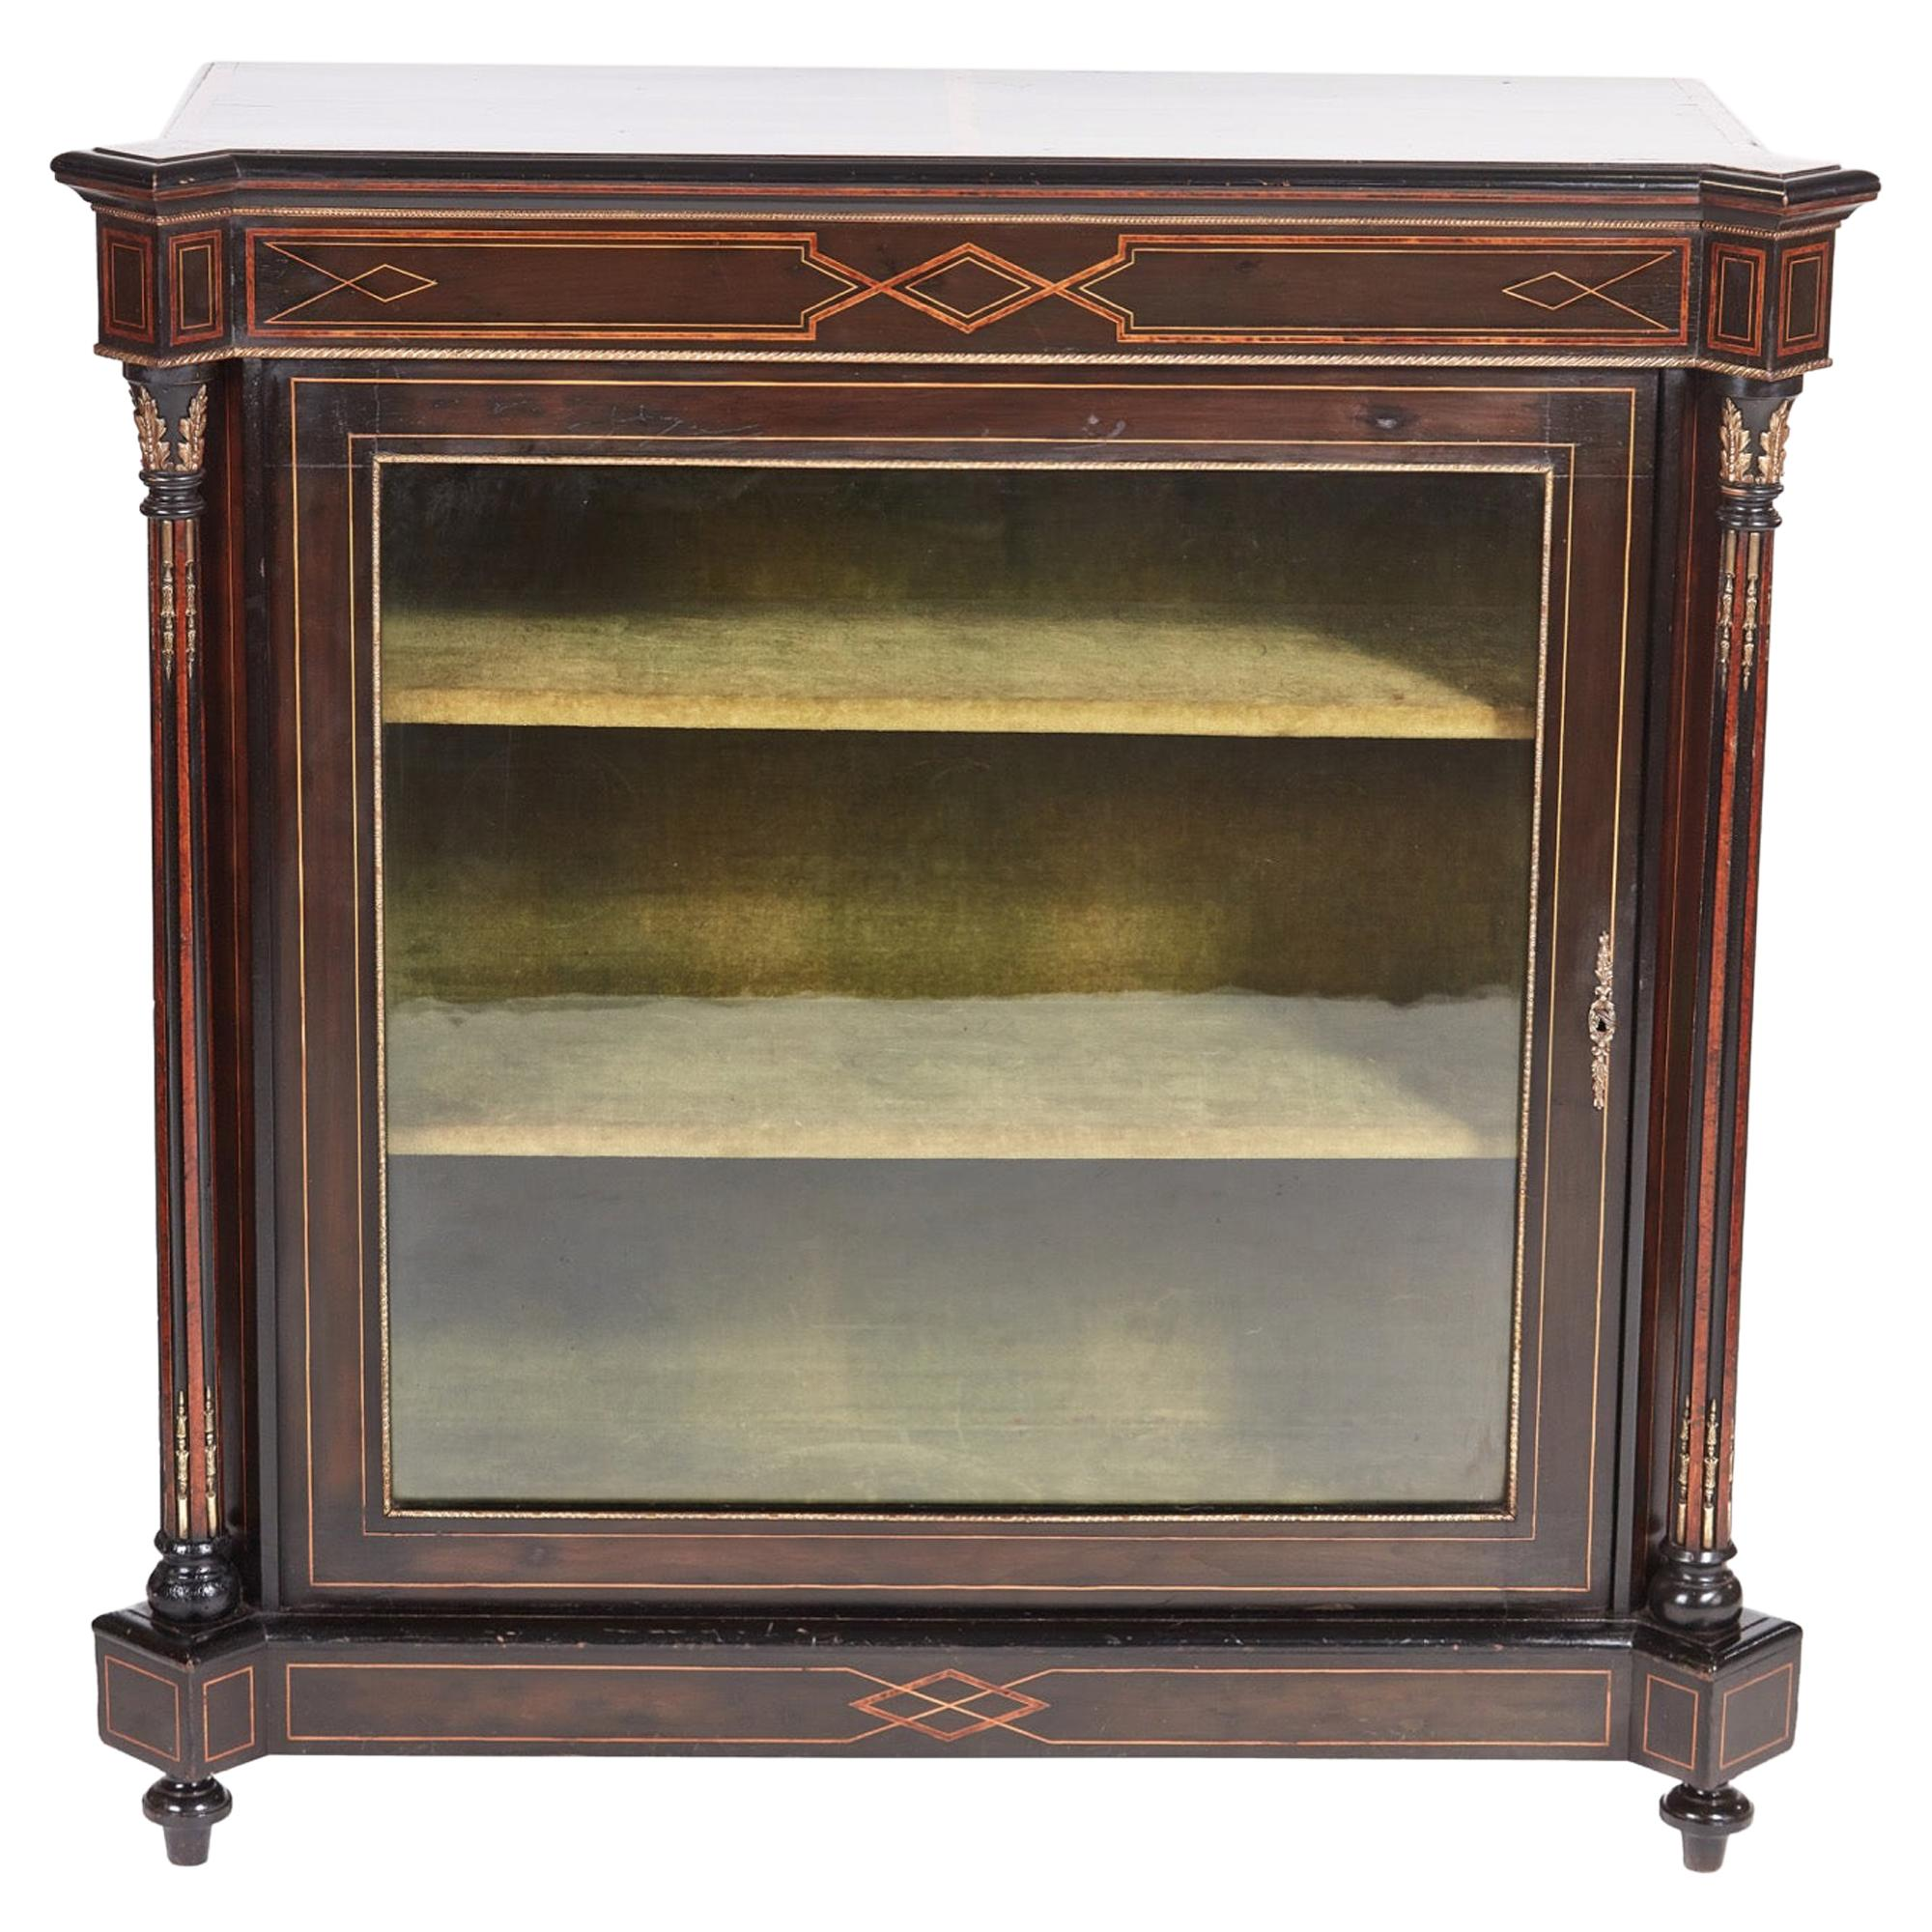 Antique 19th Century Victorian Ebonized and Inlaid Display Cabinet